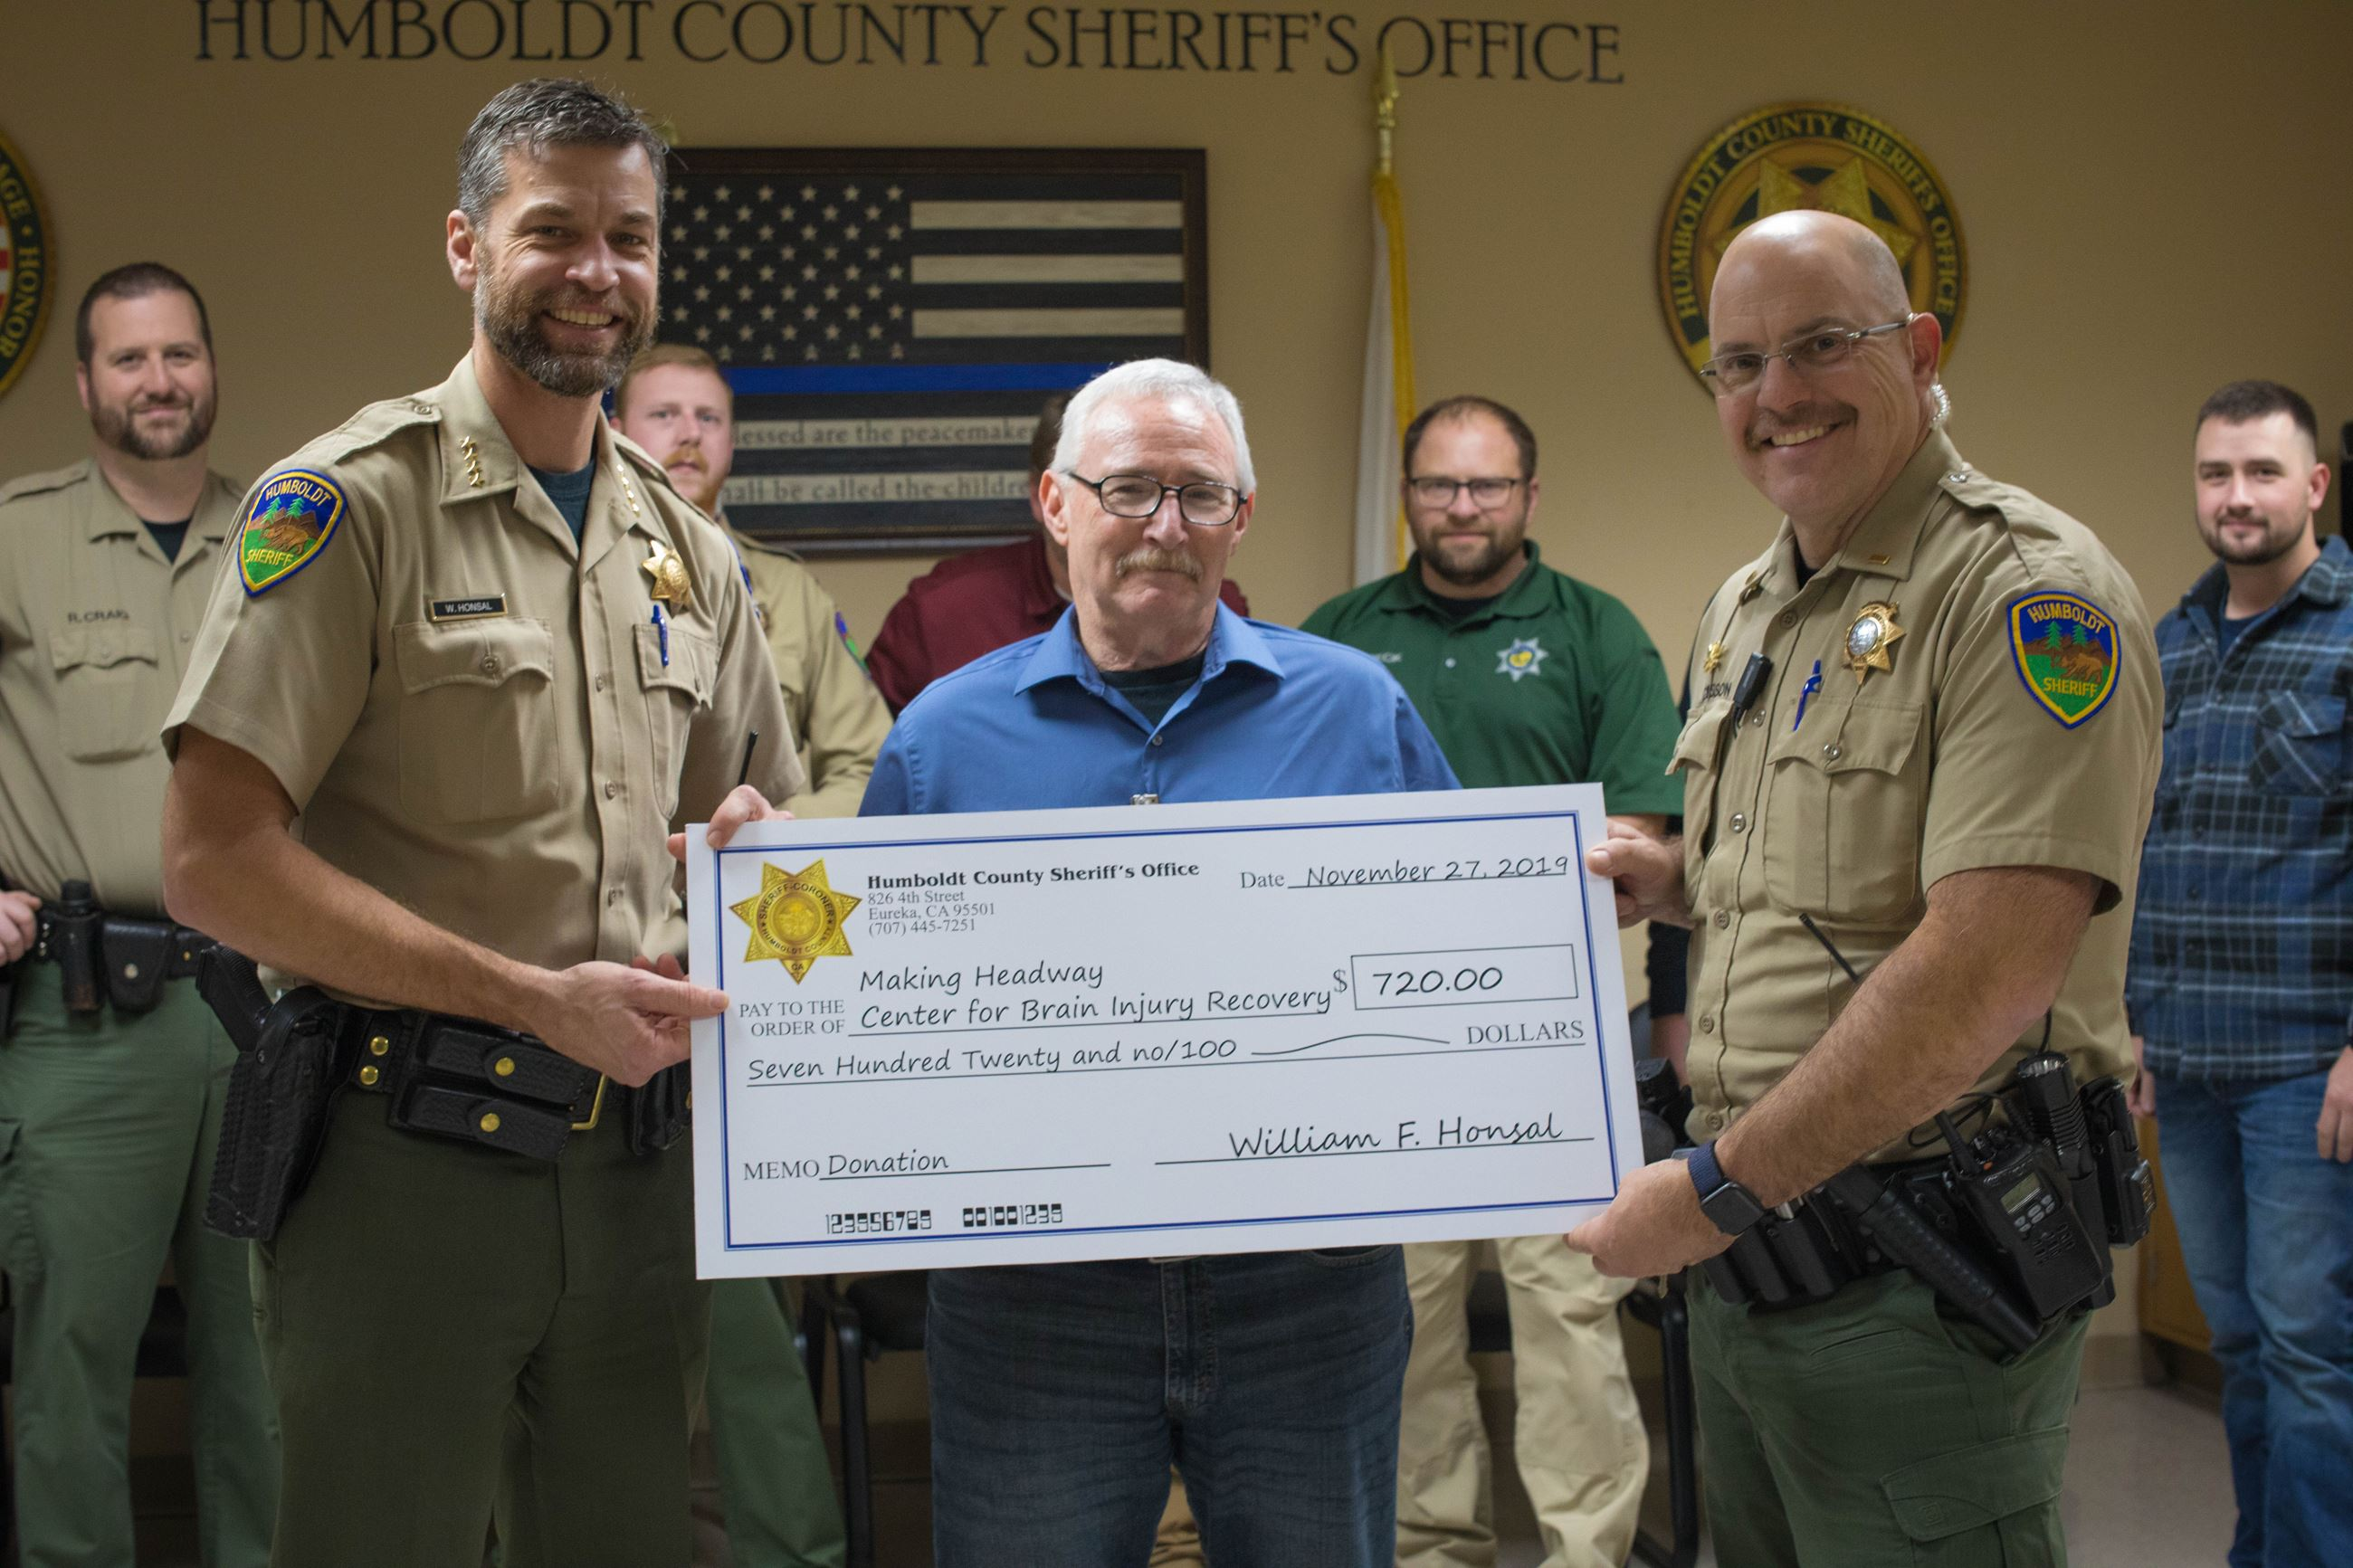 Sheriff Honsal and Lt. Musson present a check to a Making Headway representative